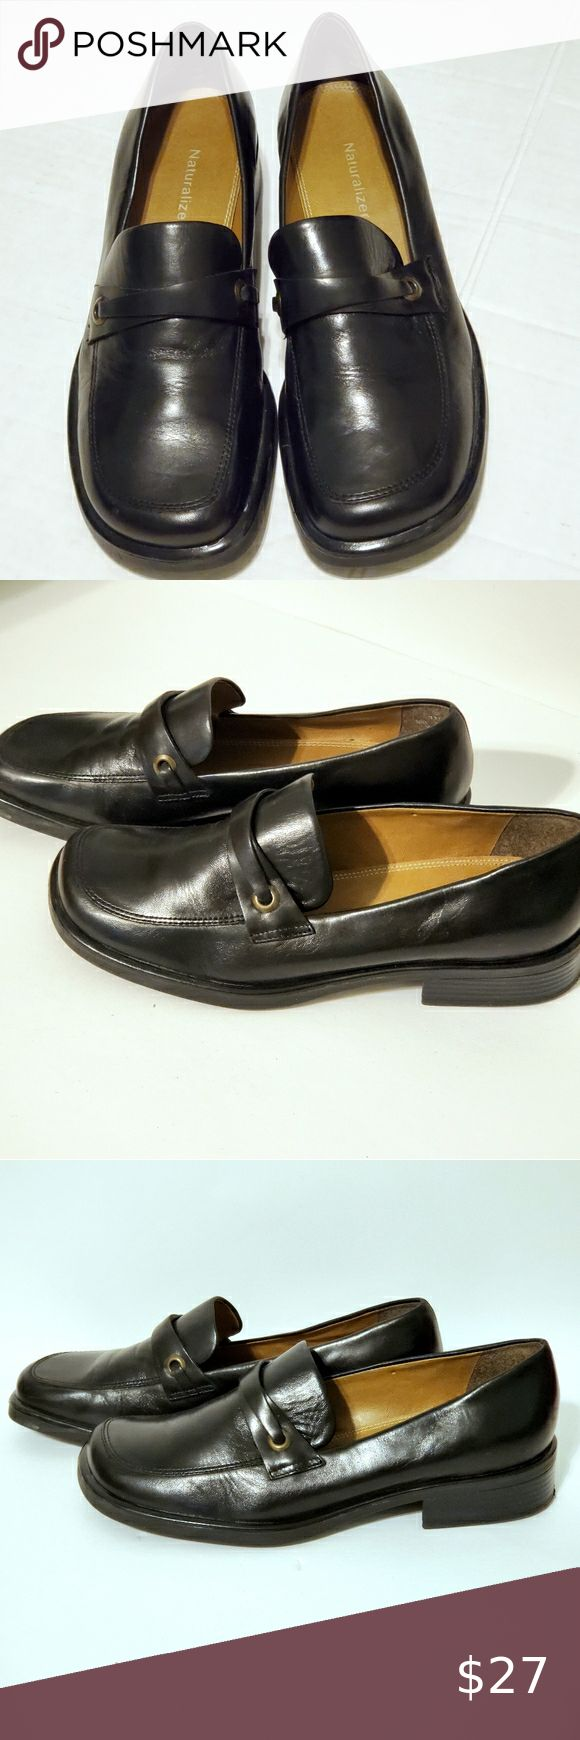 A Gorgeous Nearly New Pair of Elegant Naturalizer Genuine Leather Women/'s Dark Brown Shoes Size 7M